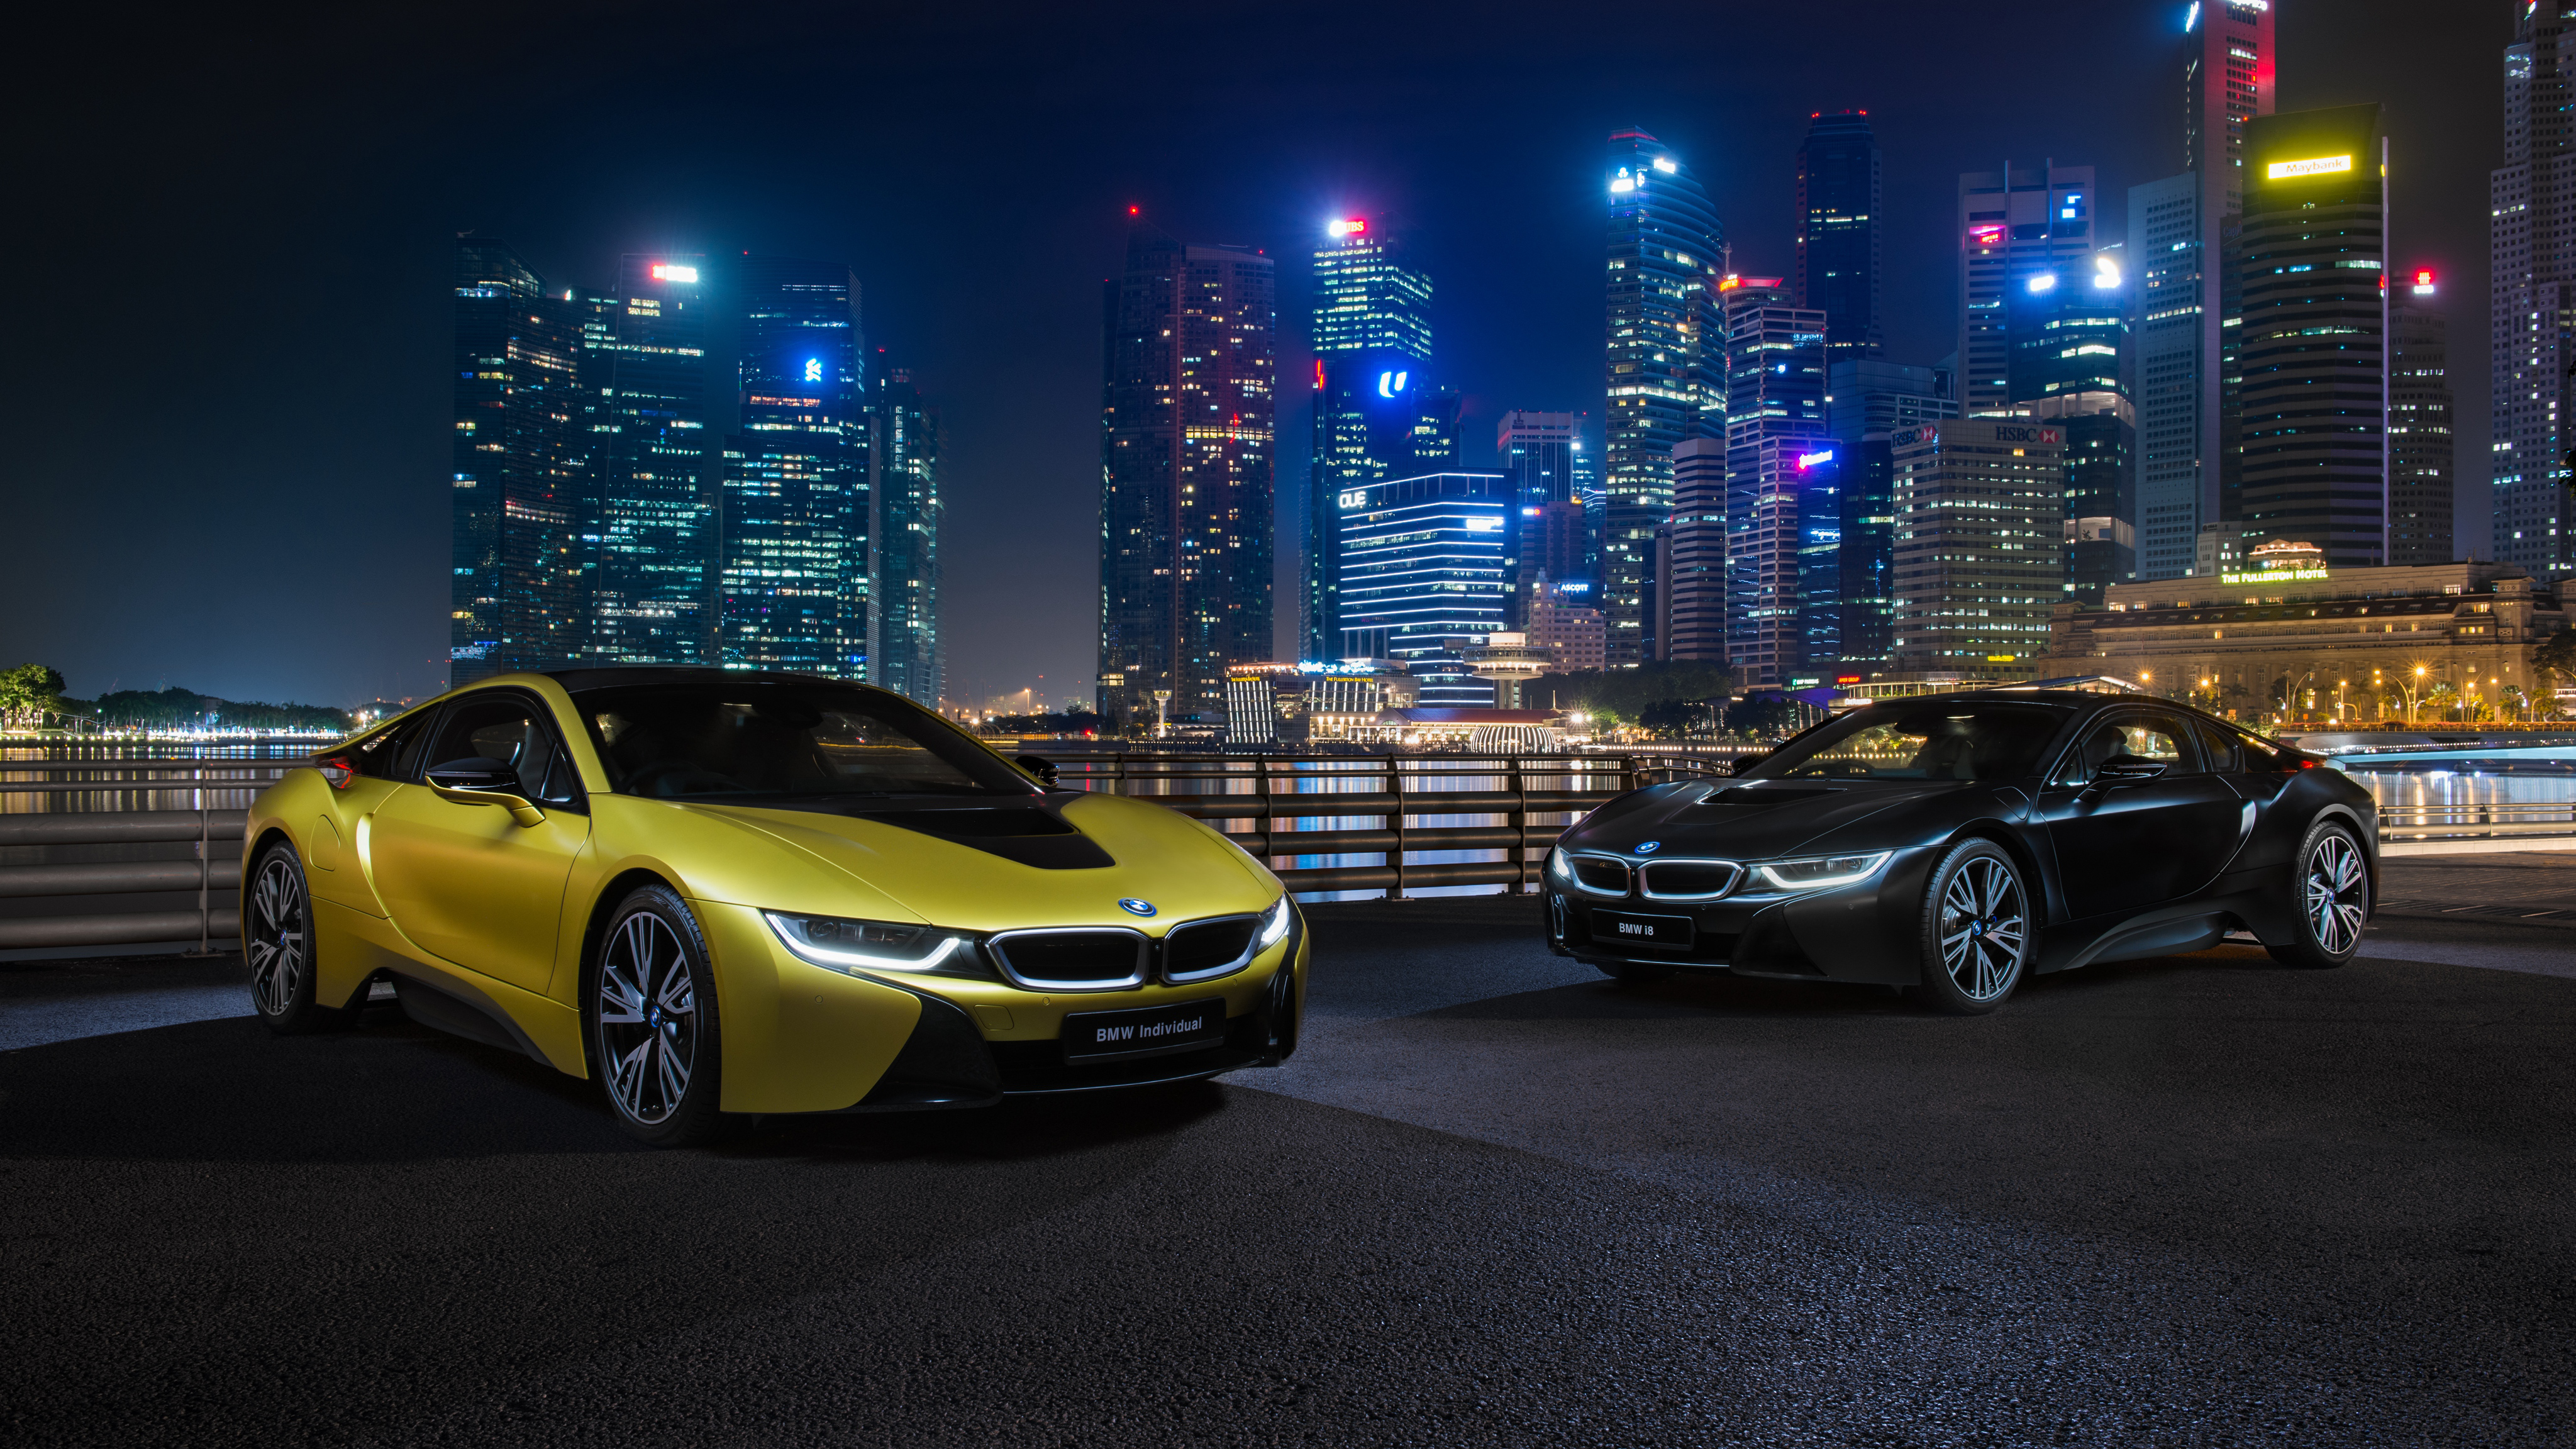 Bmw i8 frozen yellow edition 4k wallpaper hd car - Wallpaper hd 4k car ...